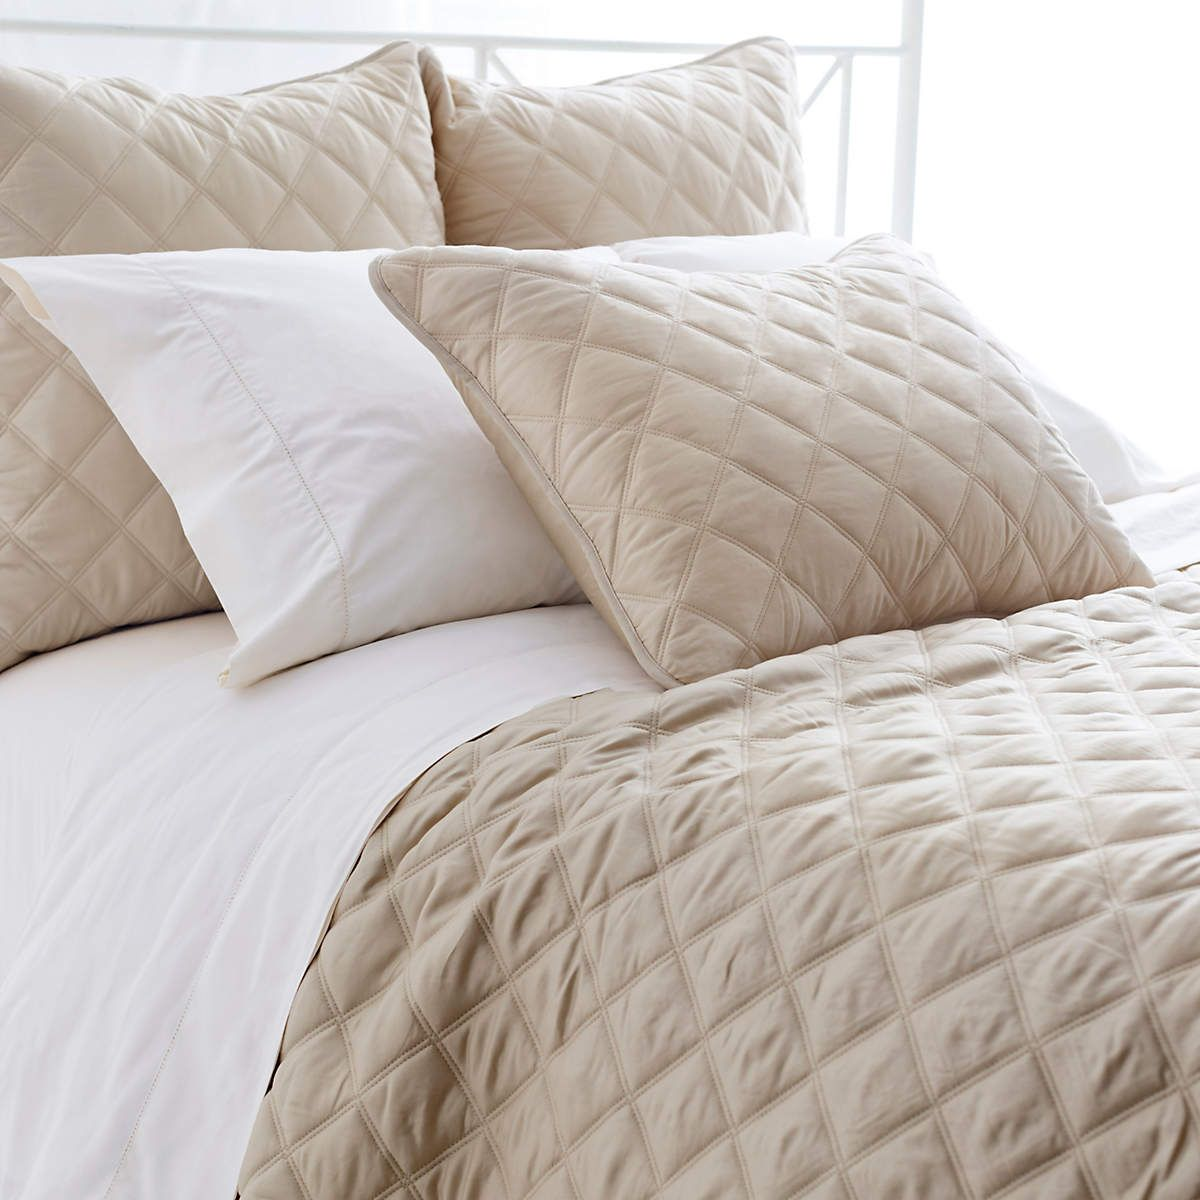 Quilted Silken Solid Sand Coverlet Pine Cone Hill Bed Design